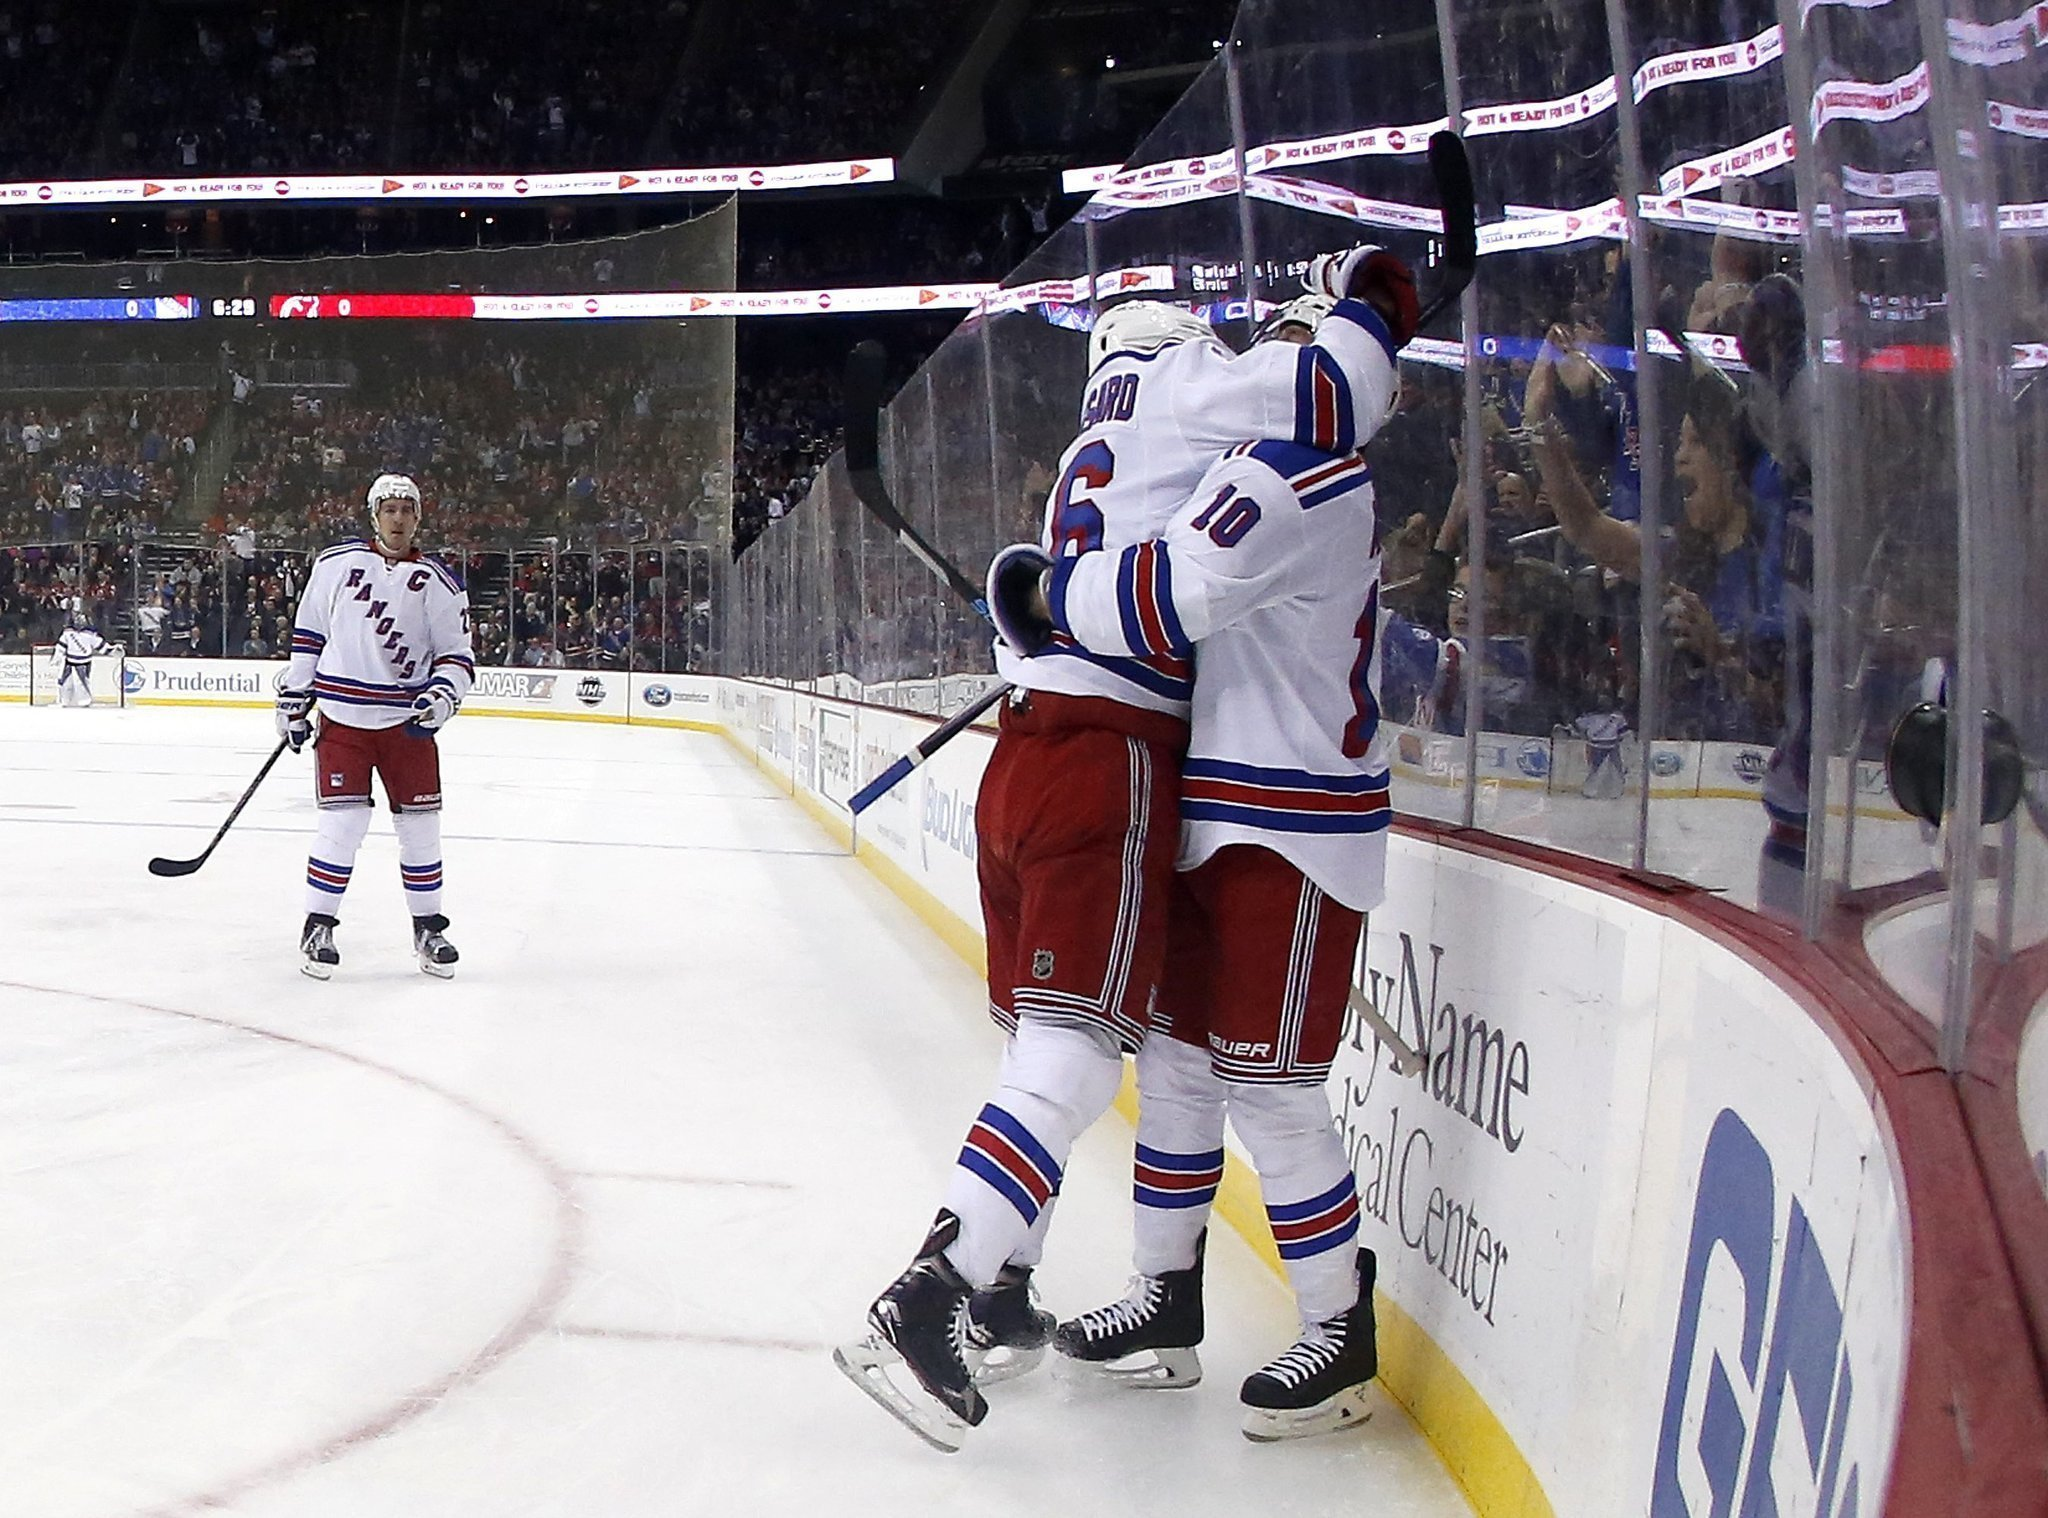 781756dd0 David Schlemko s power-play goal leads Devils over Rangers - The San ...